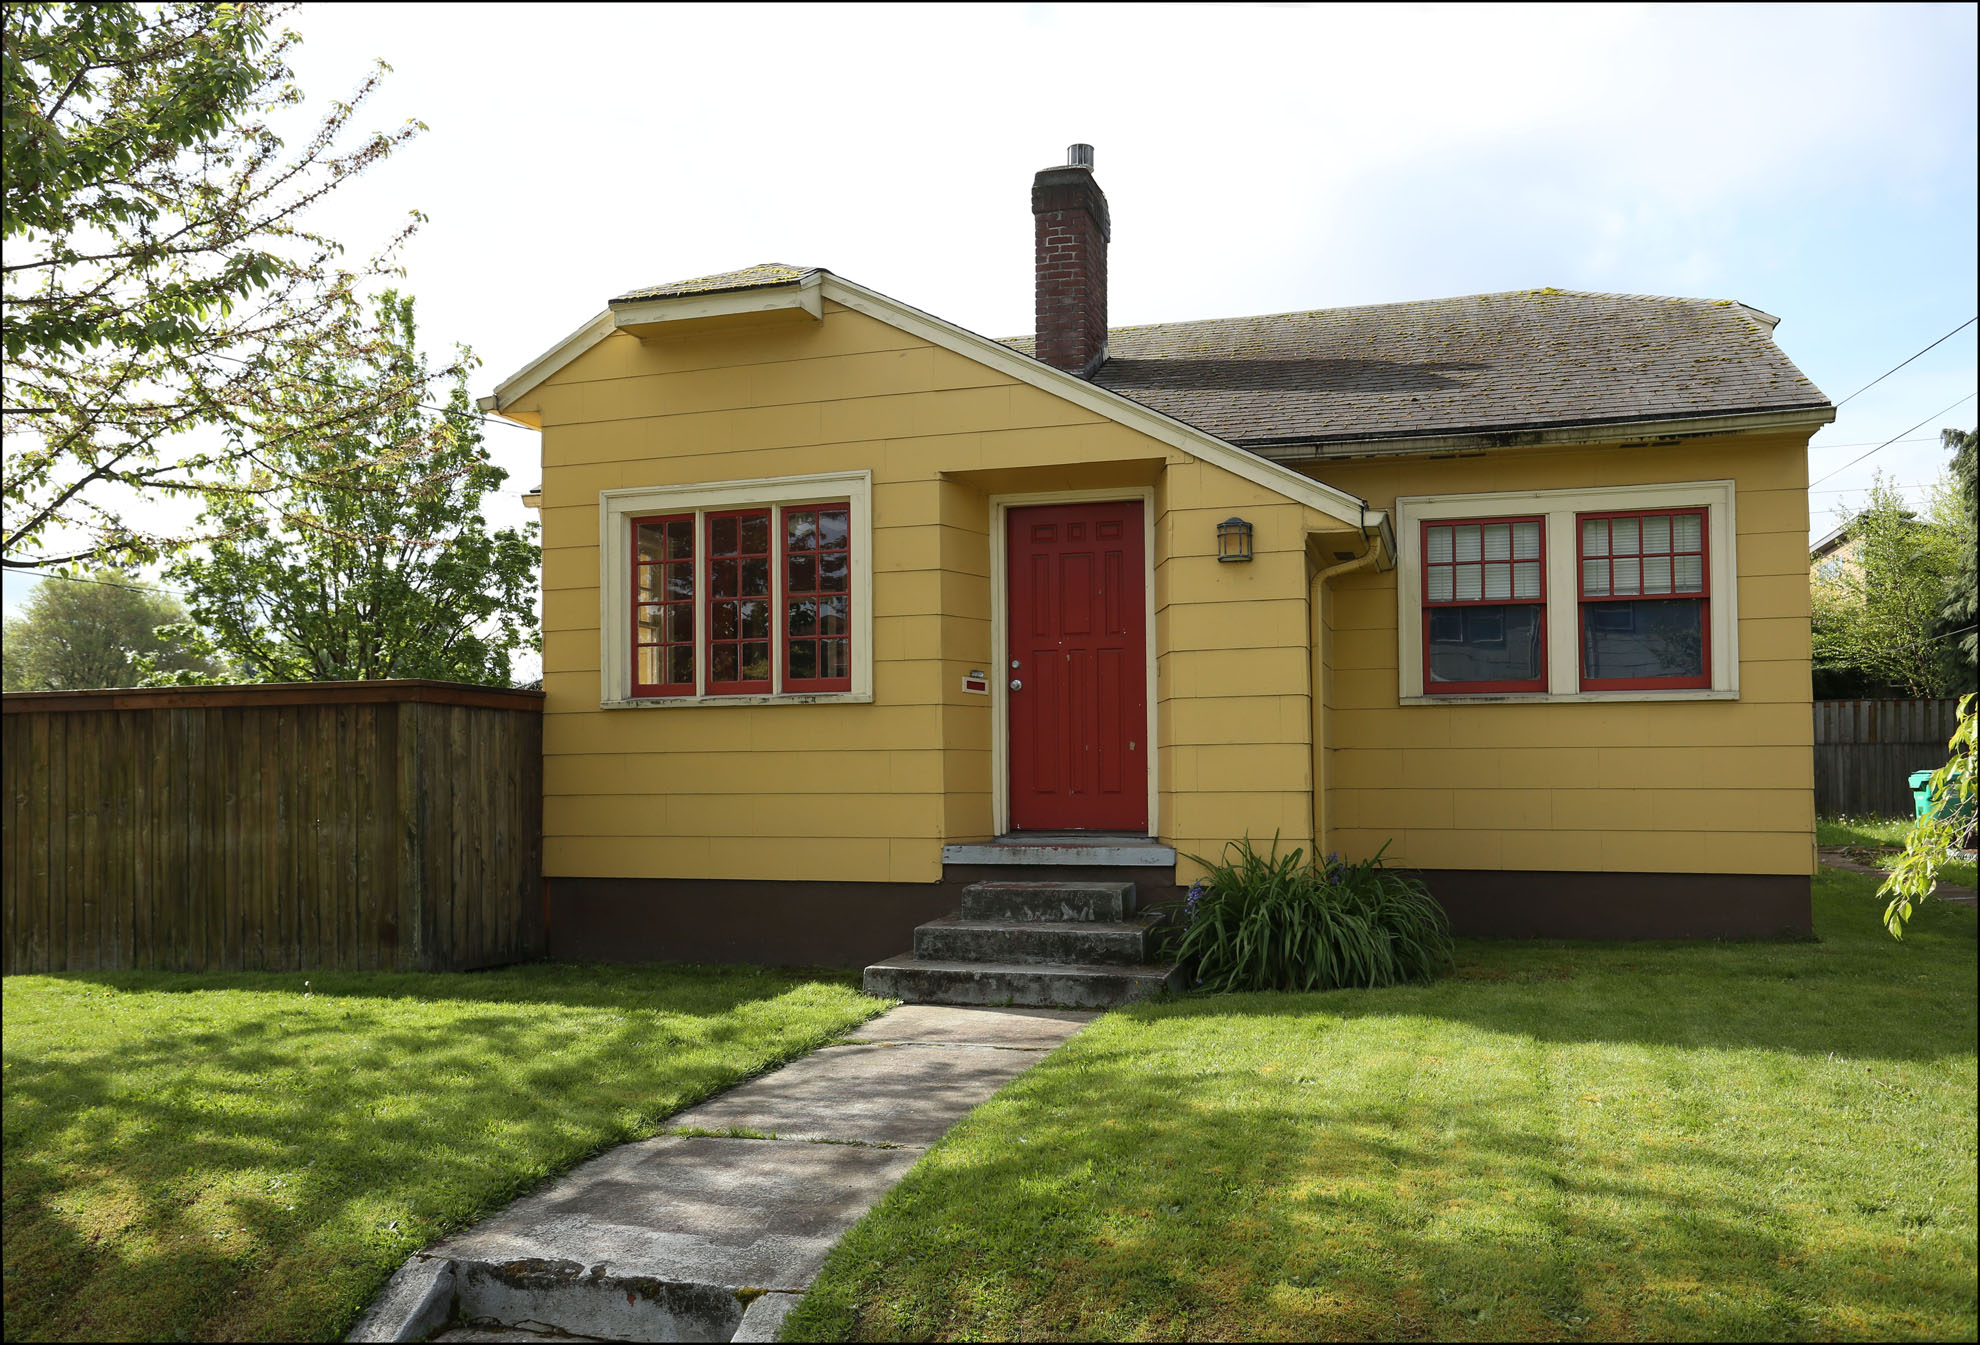 604 N Alberta St. - $317,000  SOLD for $317,000